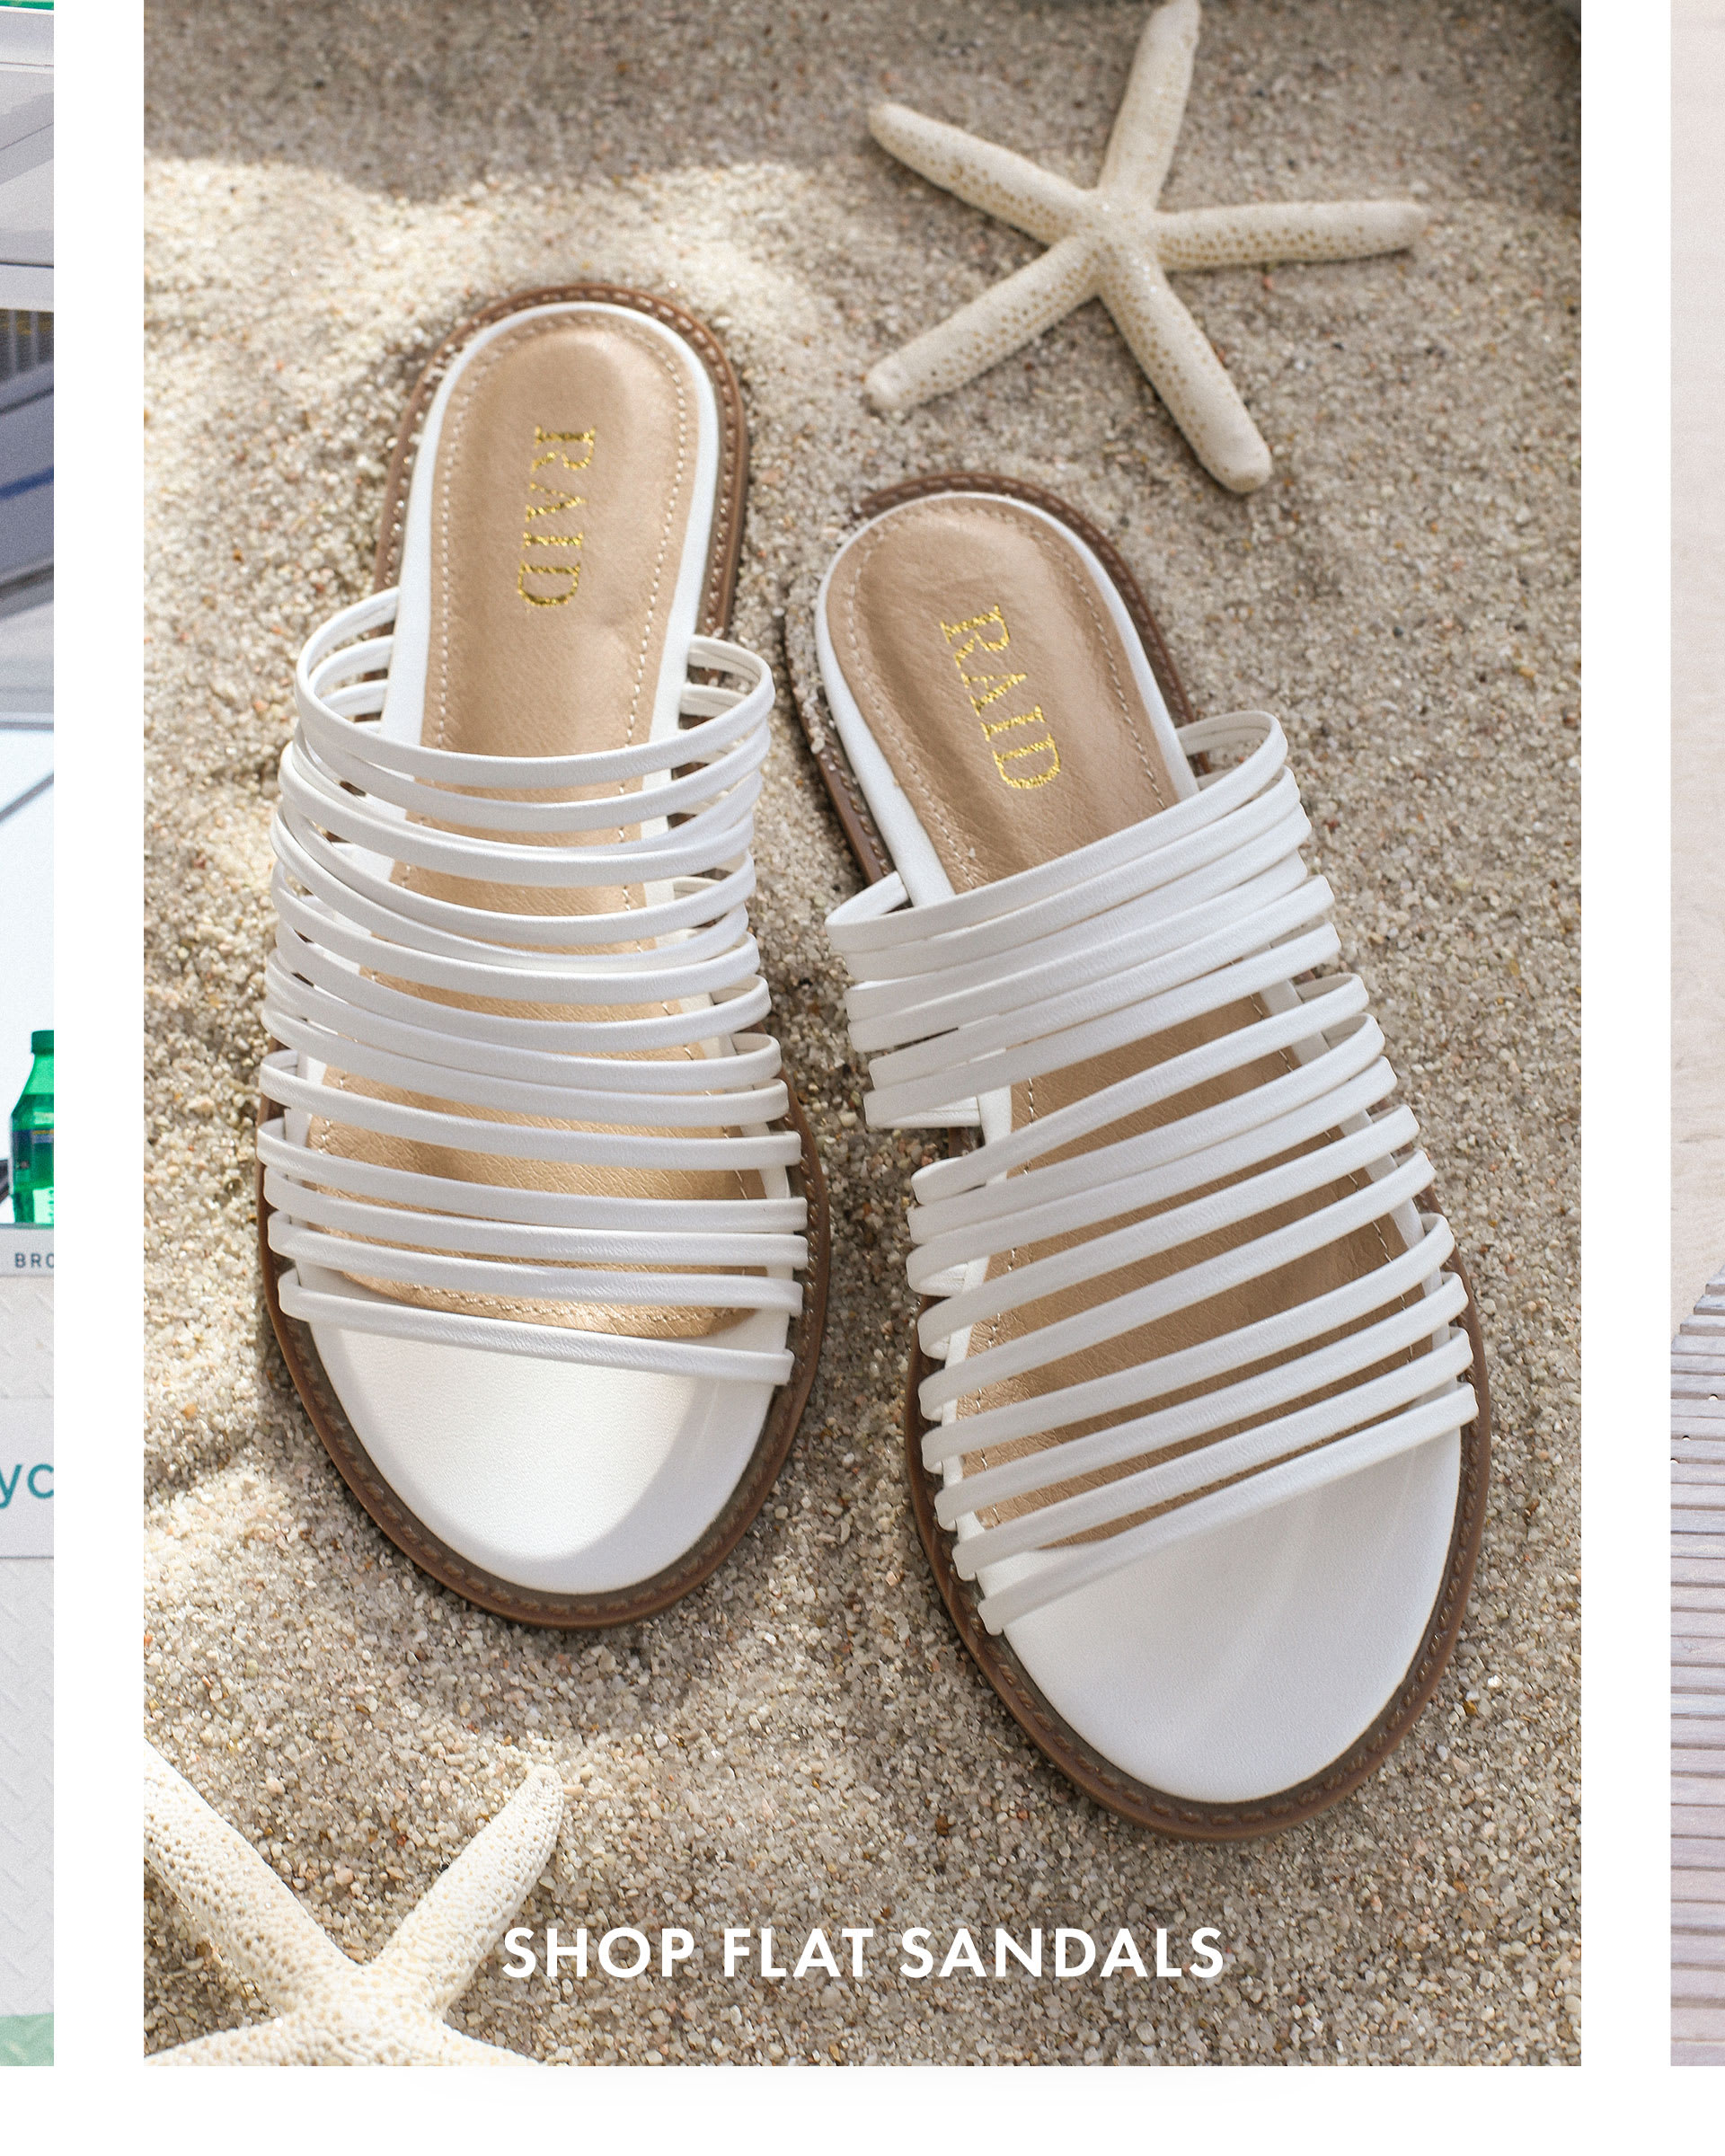 2638367a6 ... beach display of white strappy slide sandals ...